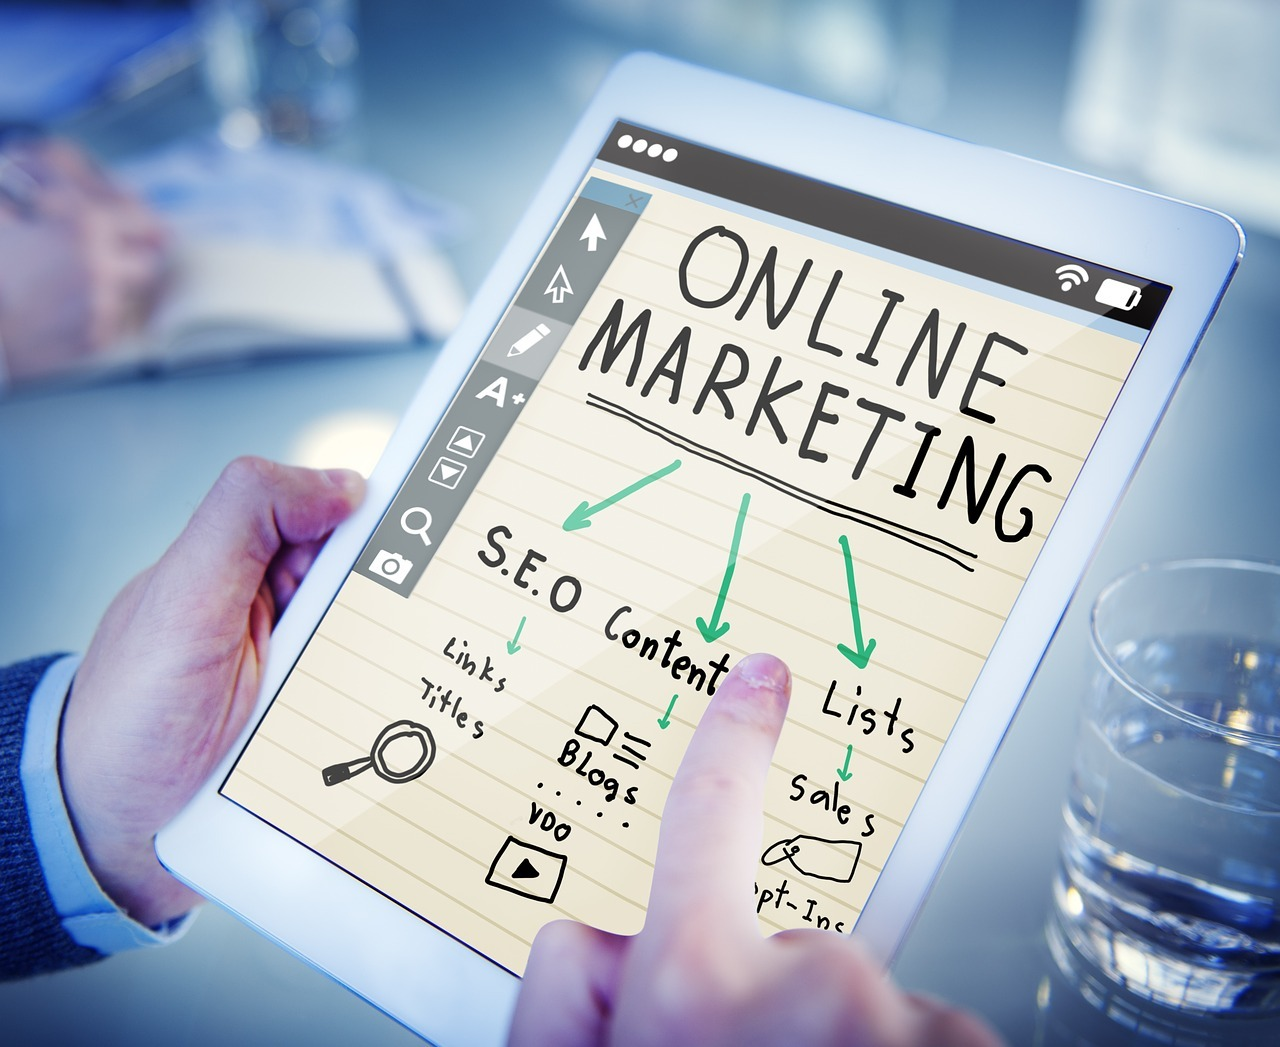 Web Marketing - Online Marketing